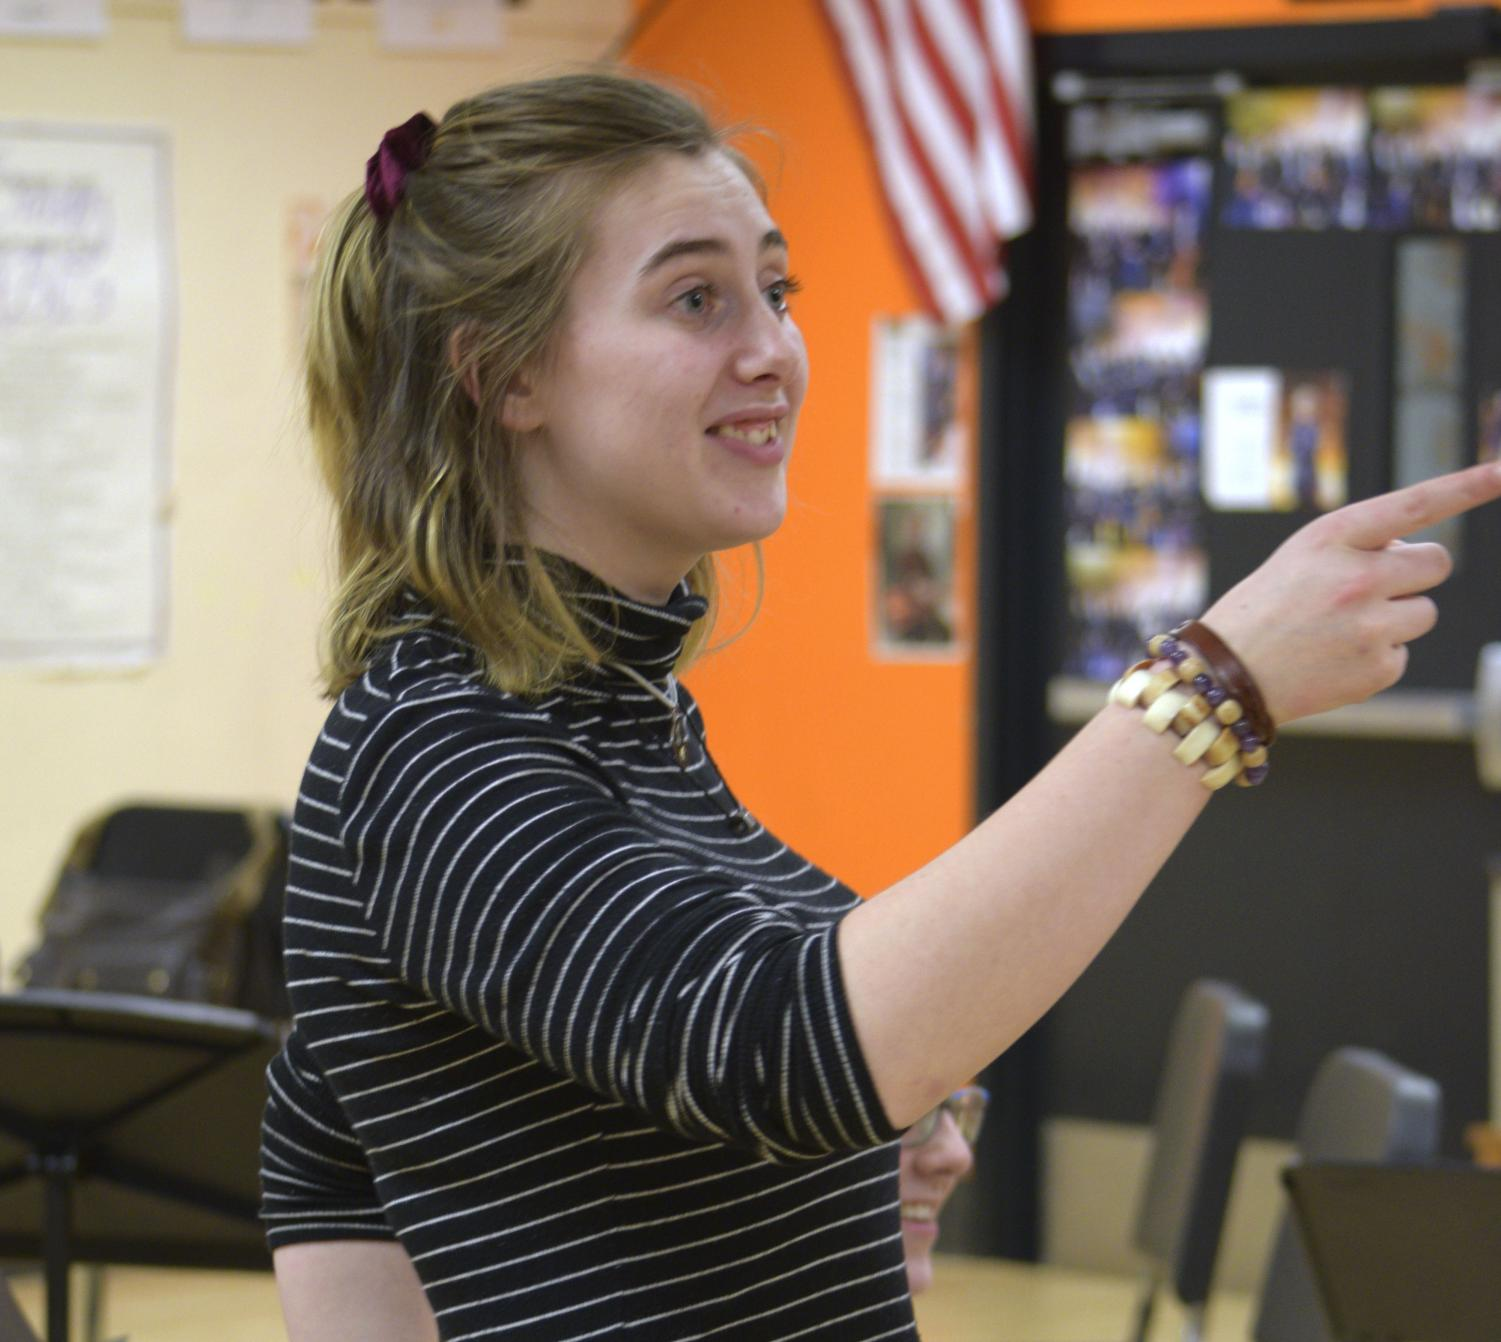 Stage manager Nietzsche Deuel, who is a senior, participates in a conversation during a play rehearsal. Going into her final show as a senior, Deuel says it is bittersweet to be leaving behind the Park theater program, but she is excited to finish with the upcoming spring play.